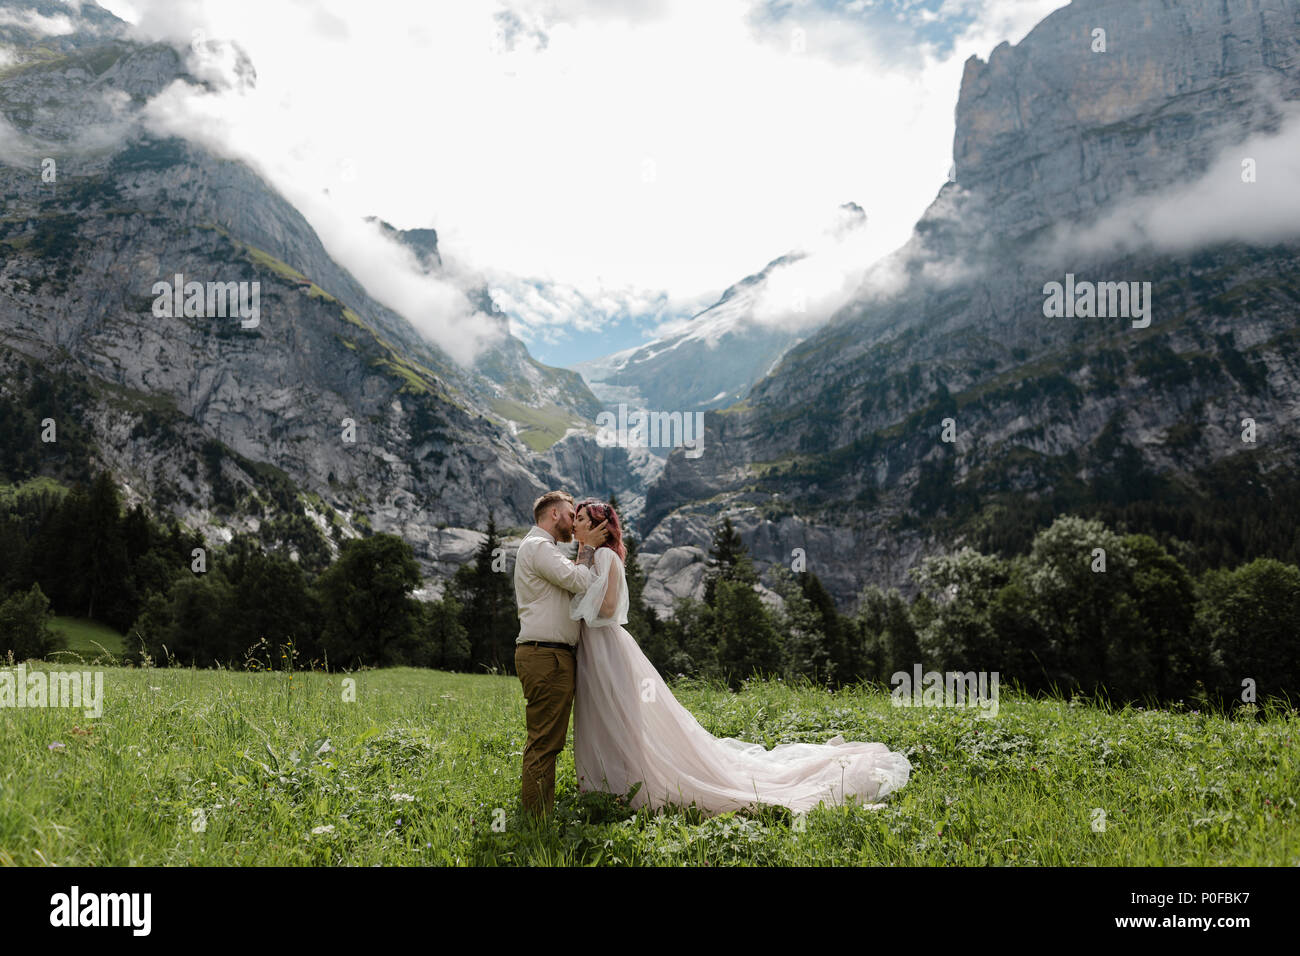 happy bride and groom hugging and kissing on green mountain meadow with clouds in Alps - Stock Image